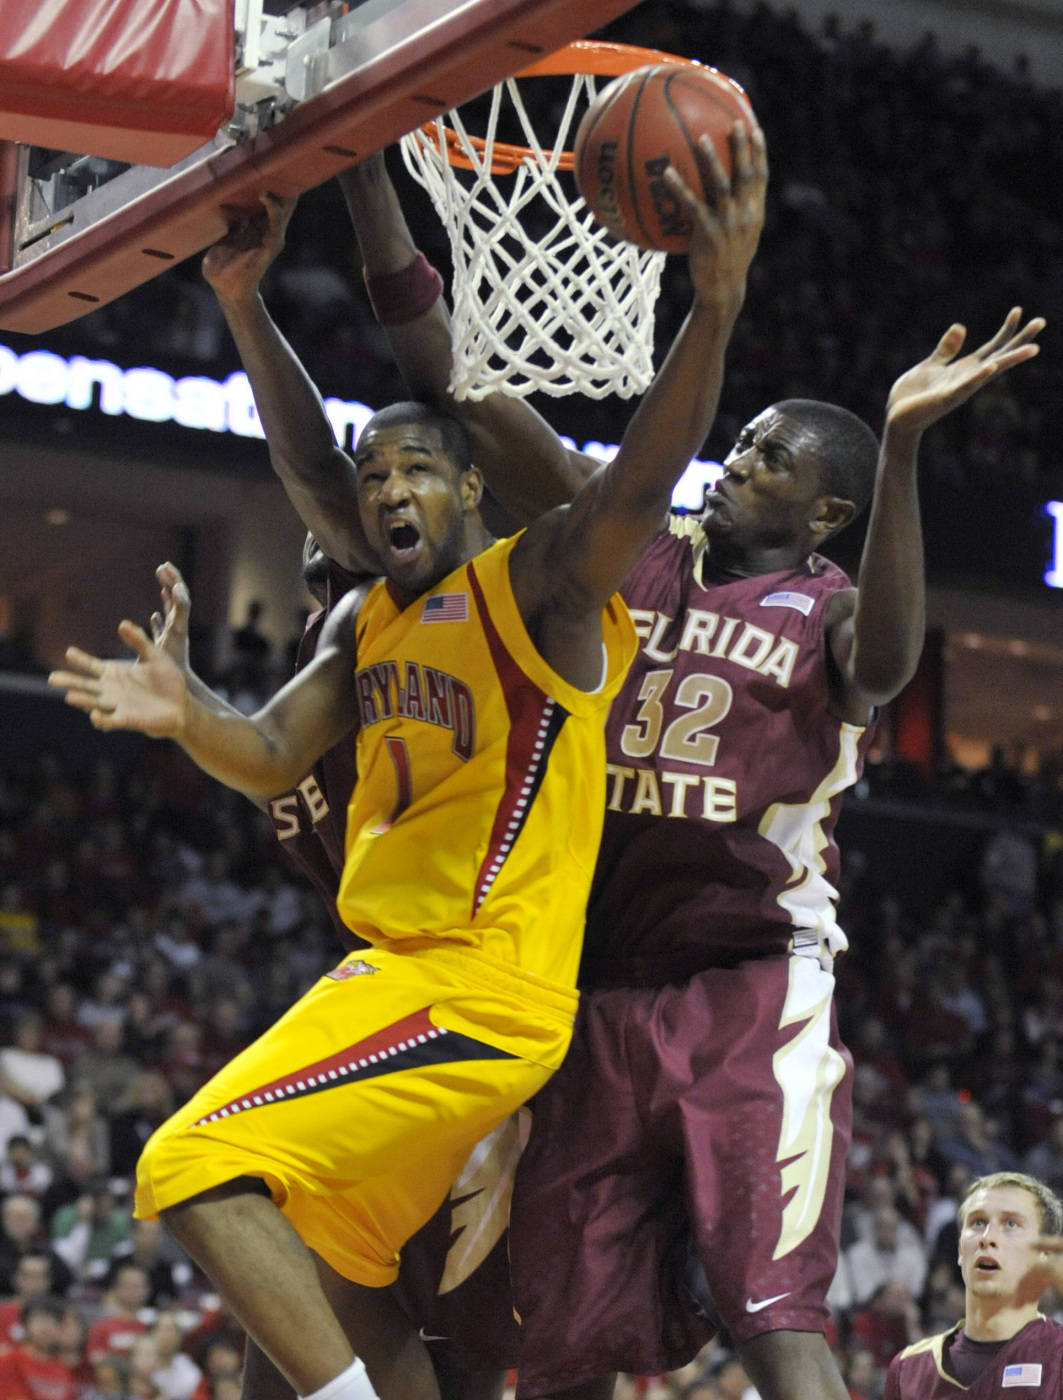 Maryland's Landon Milbourne shoots as Florida State's Solomon Alabi defends in the second half of an NCAA college basketball game, Sunday, Jan. 10, 2010, in College Park, Md. Maryland won 77-68. (AP Photo/Gail Burton)